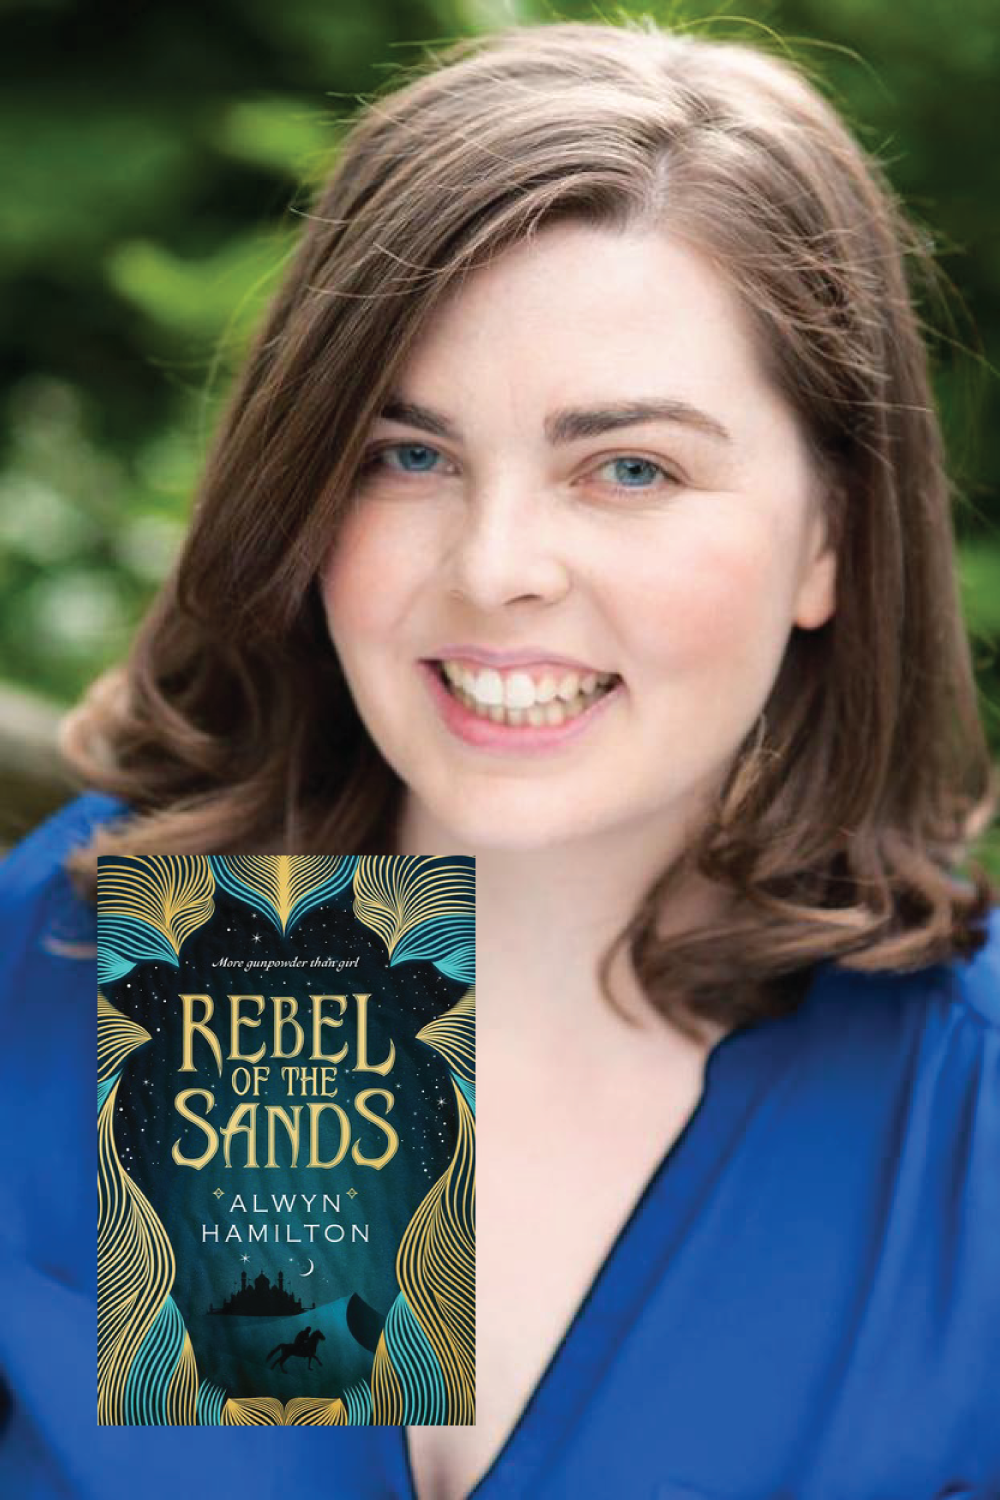 Author Alwyn Hamilton with her book Rebel of the Sands